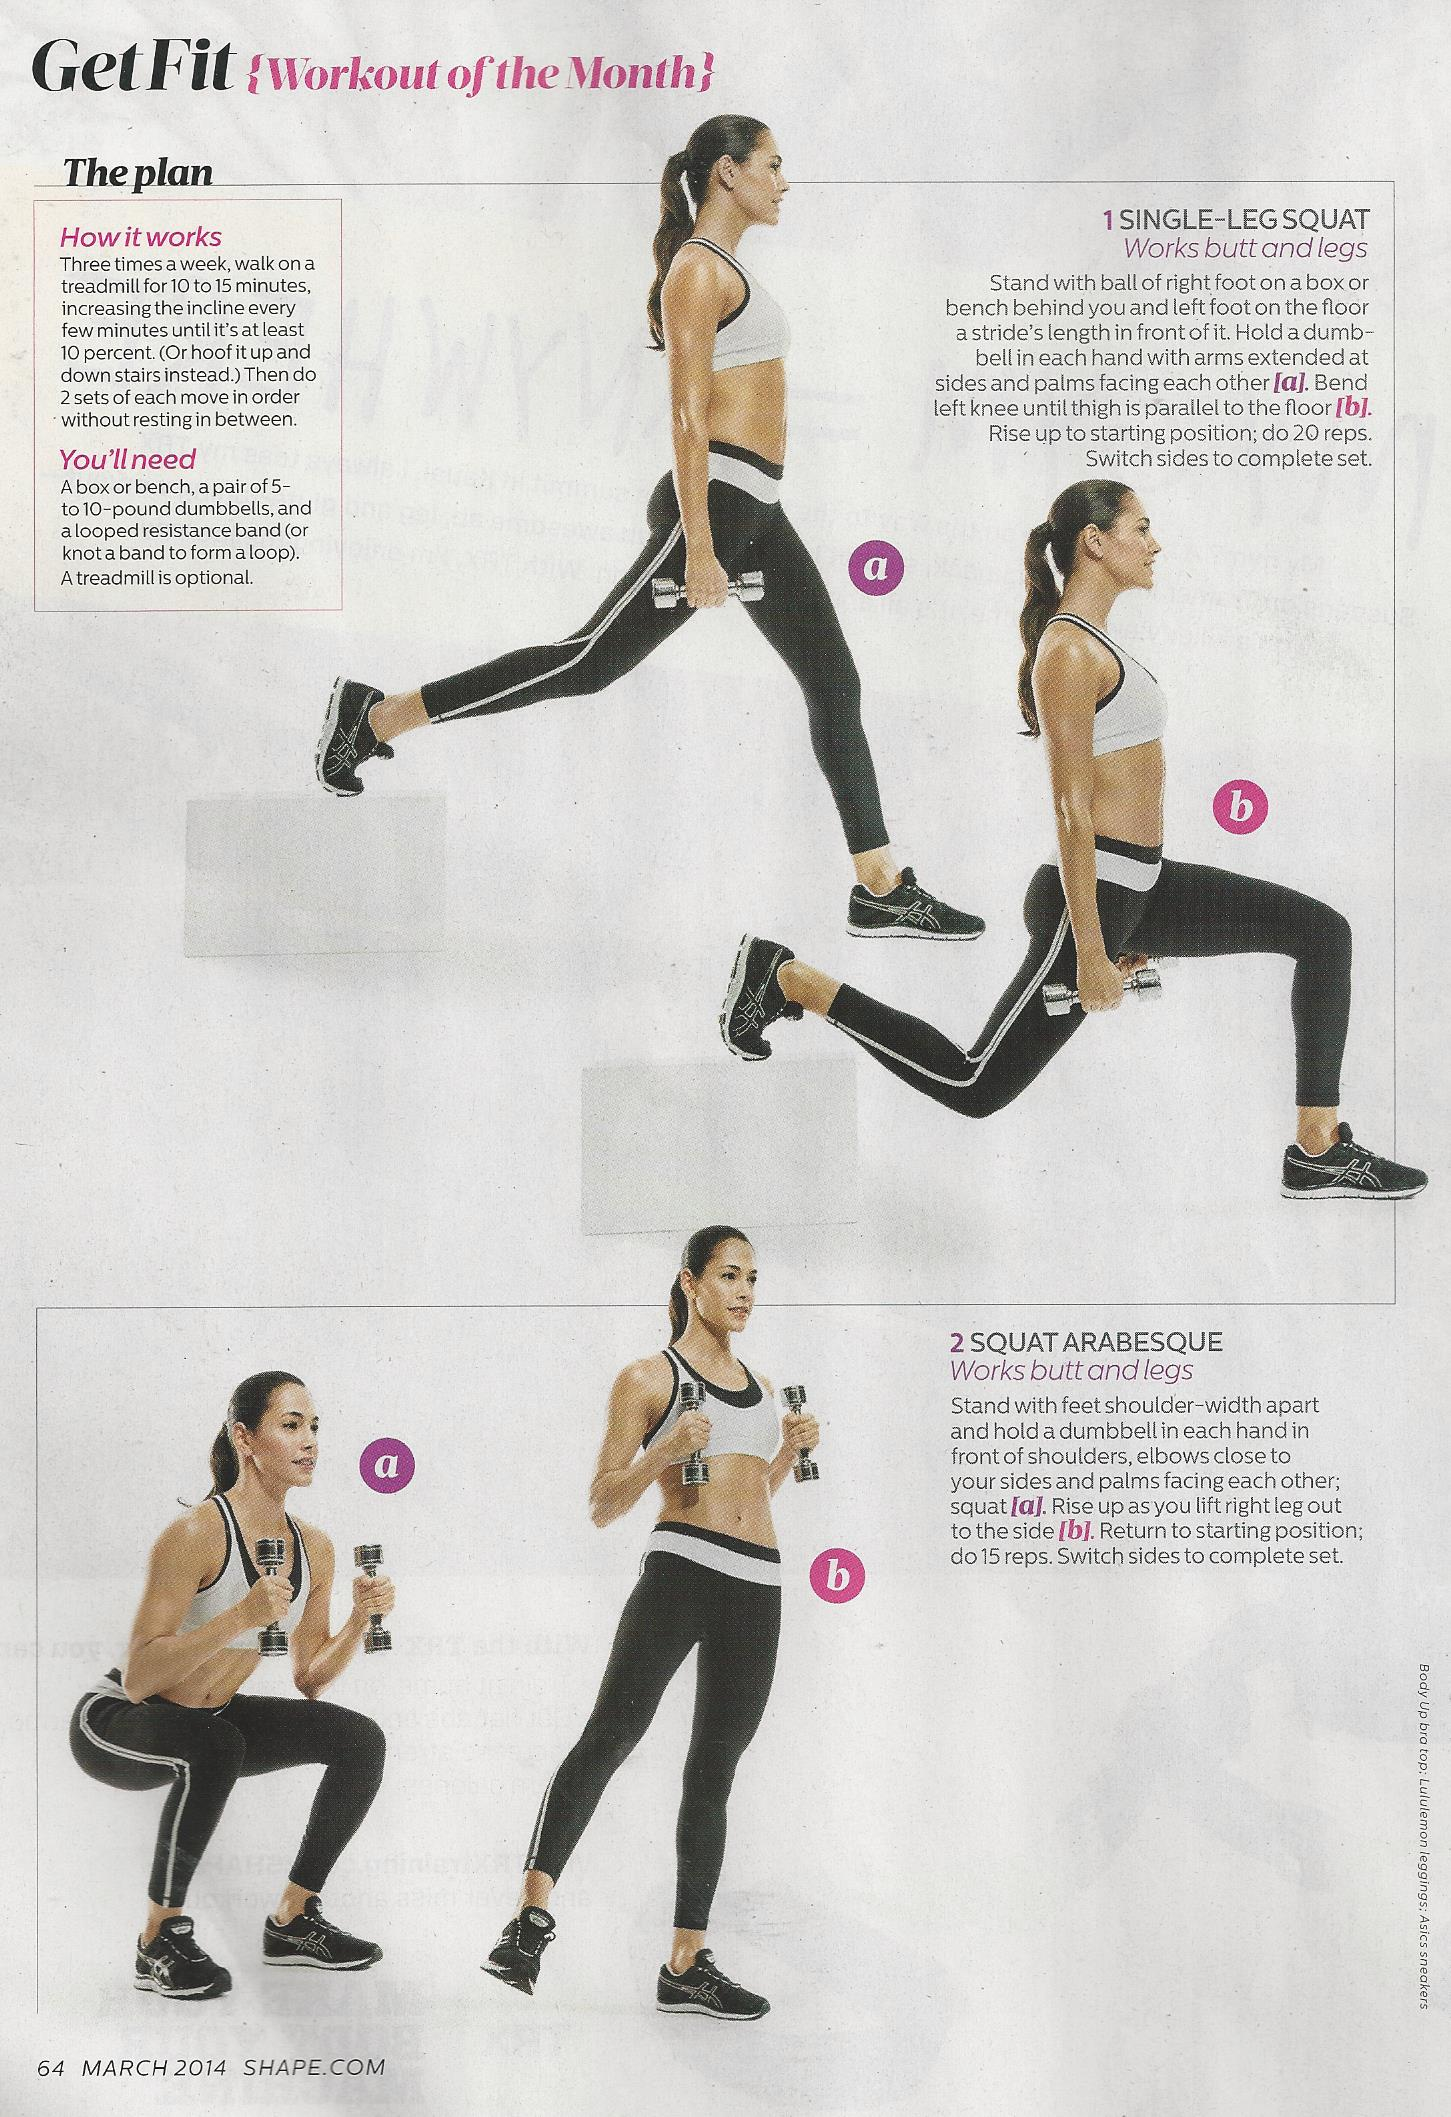 Workout of the Month Shape magazine 001 - Brooklyn Fit